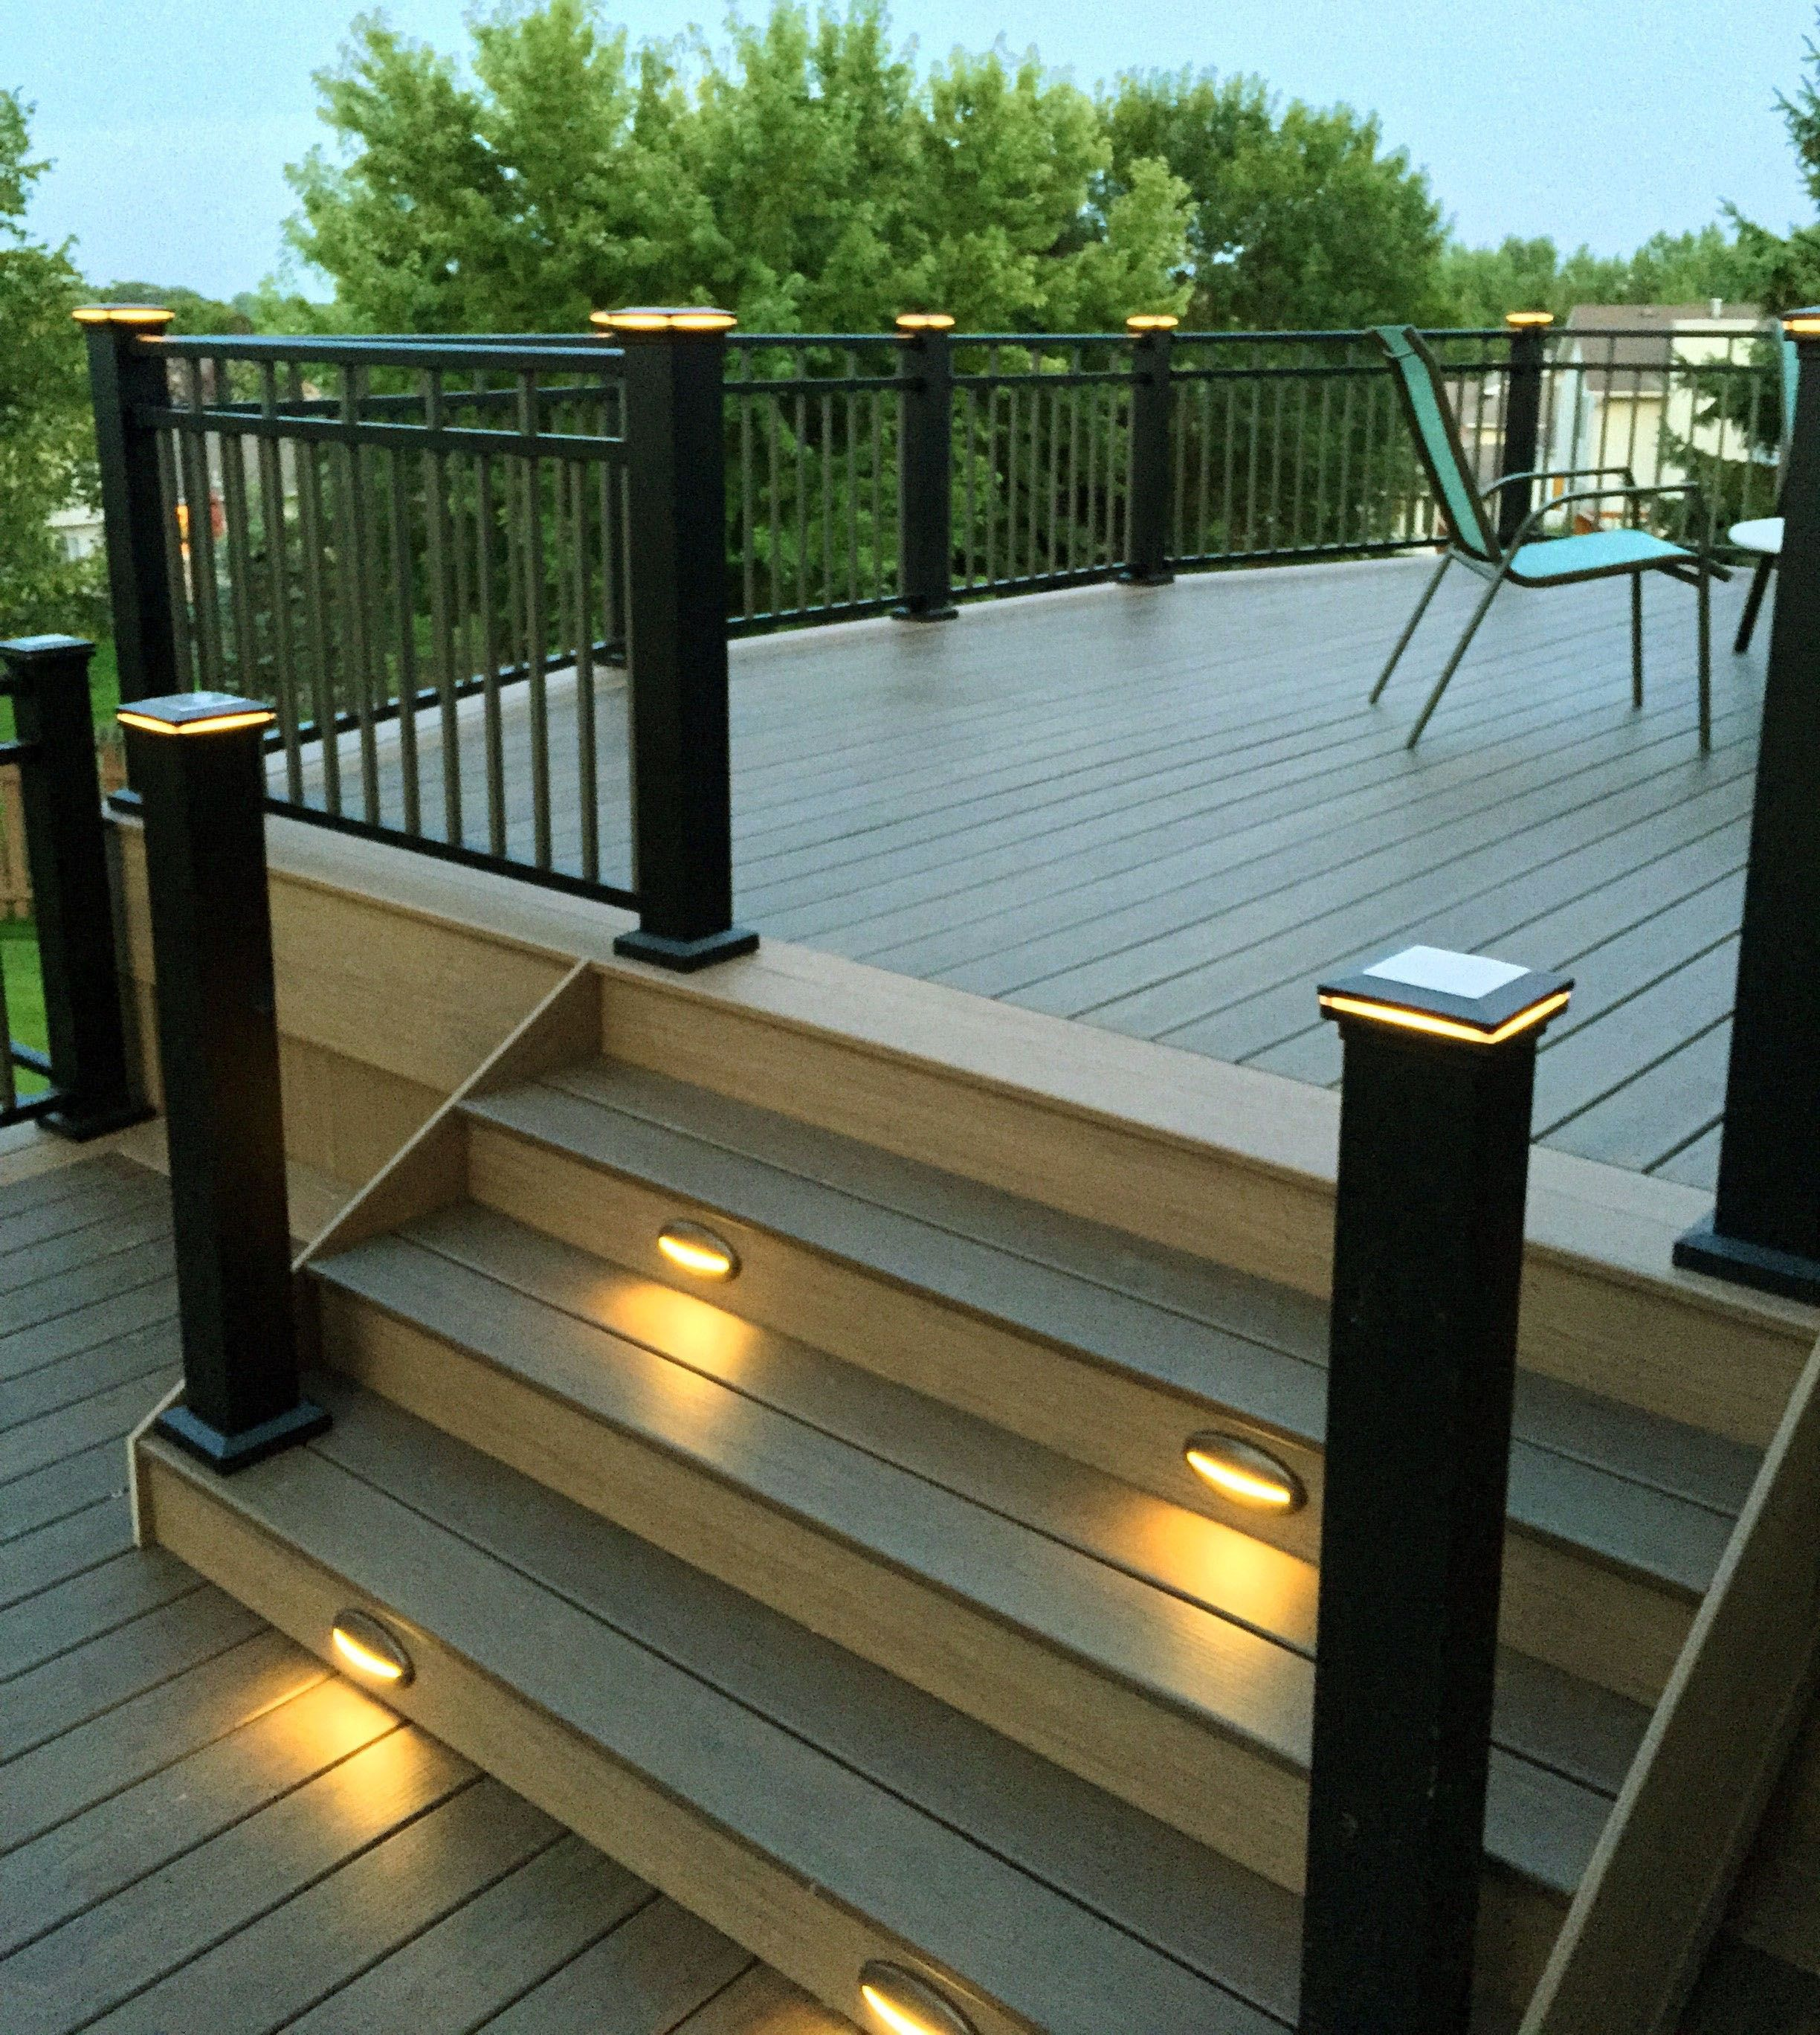 Crazy Deck Lighting Ideas Canada Only In Miral Iva Design Outdoor Deck Lighting Deck Lighting Solar Deck Lights